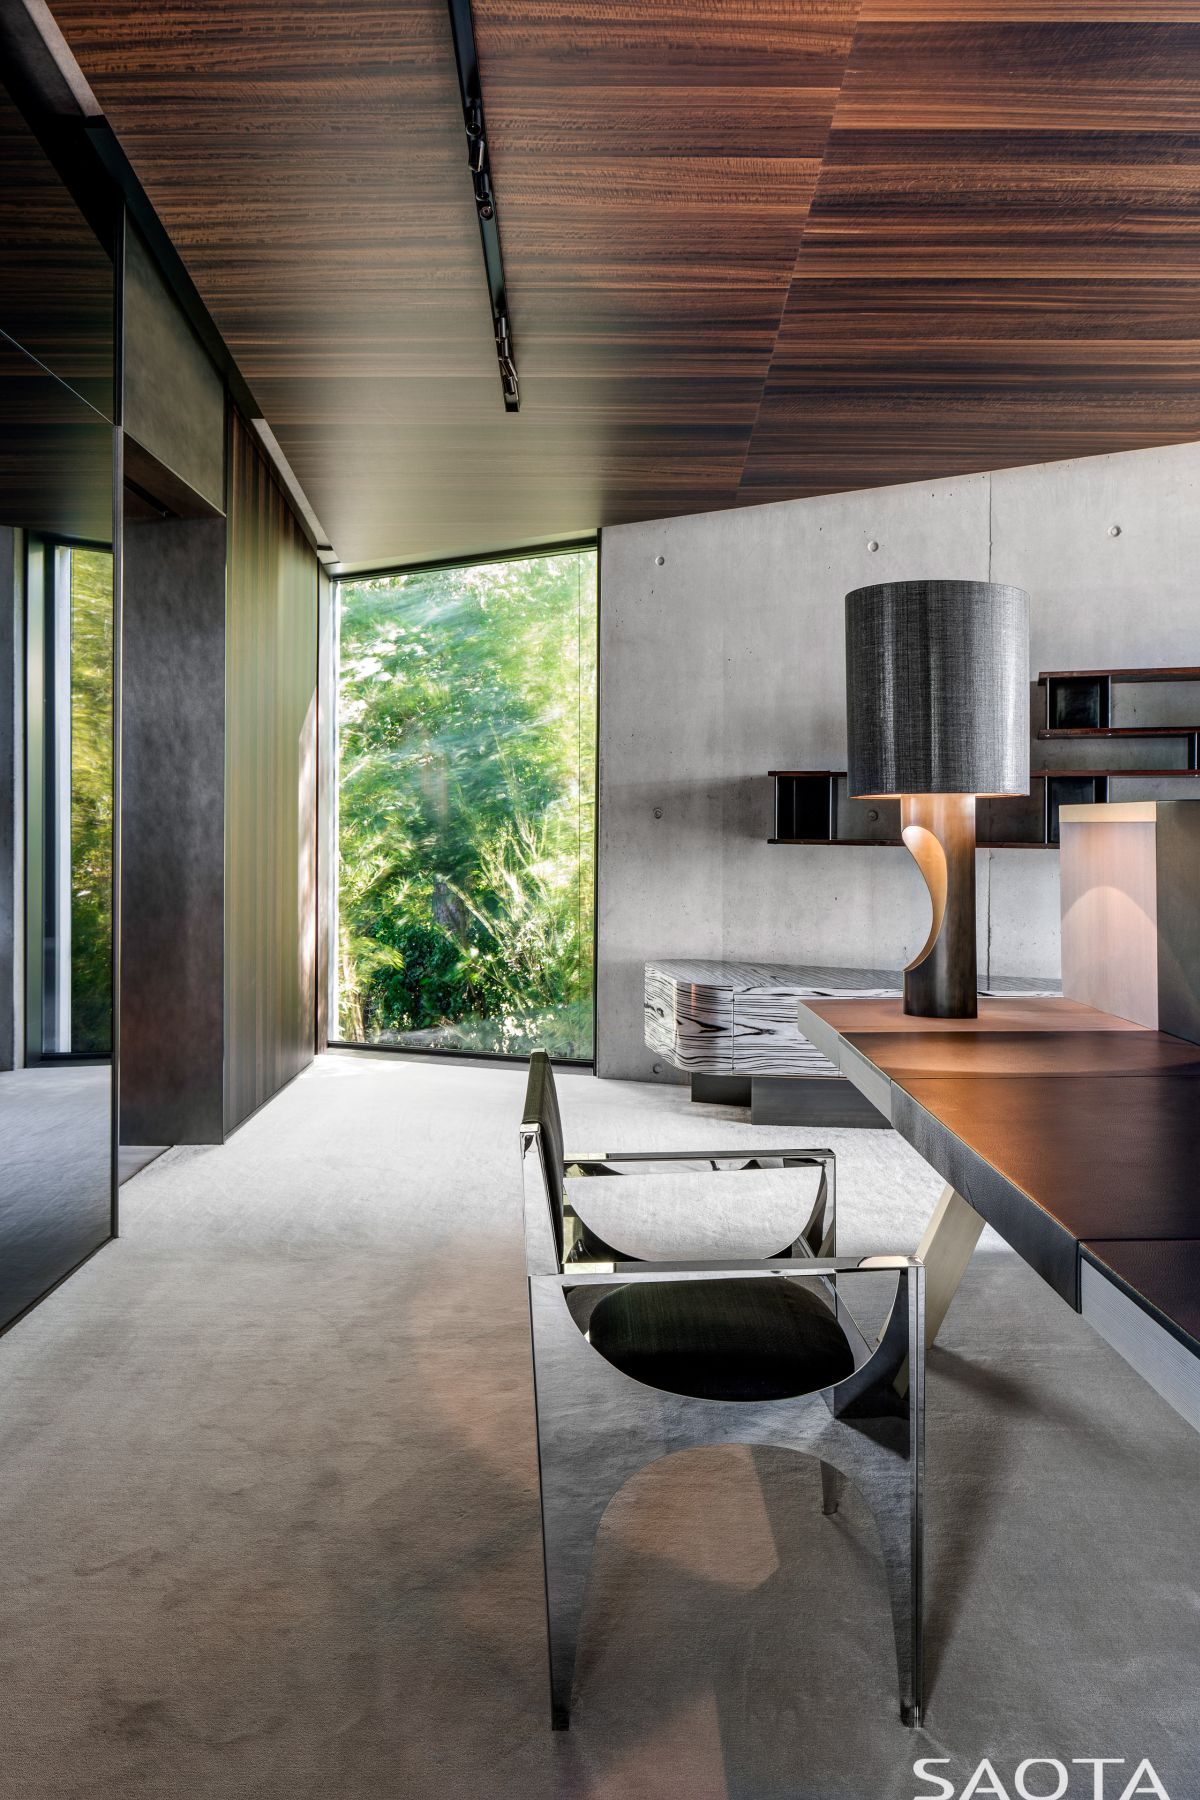 The cold and austere look of the exposed concrete surfaces is beautifully balanced out by warm wood accents